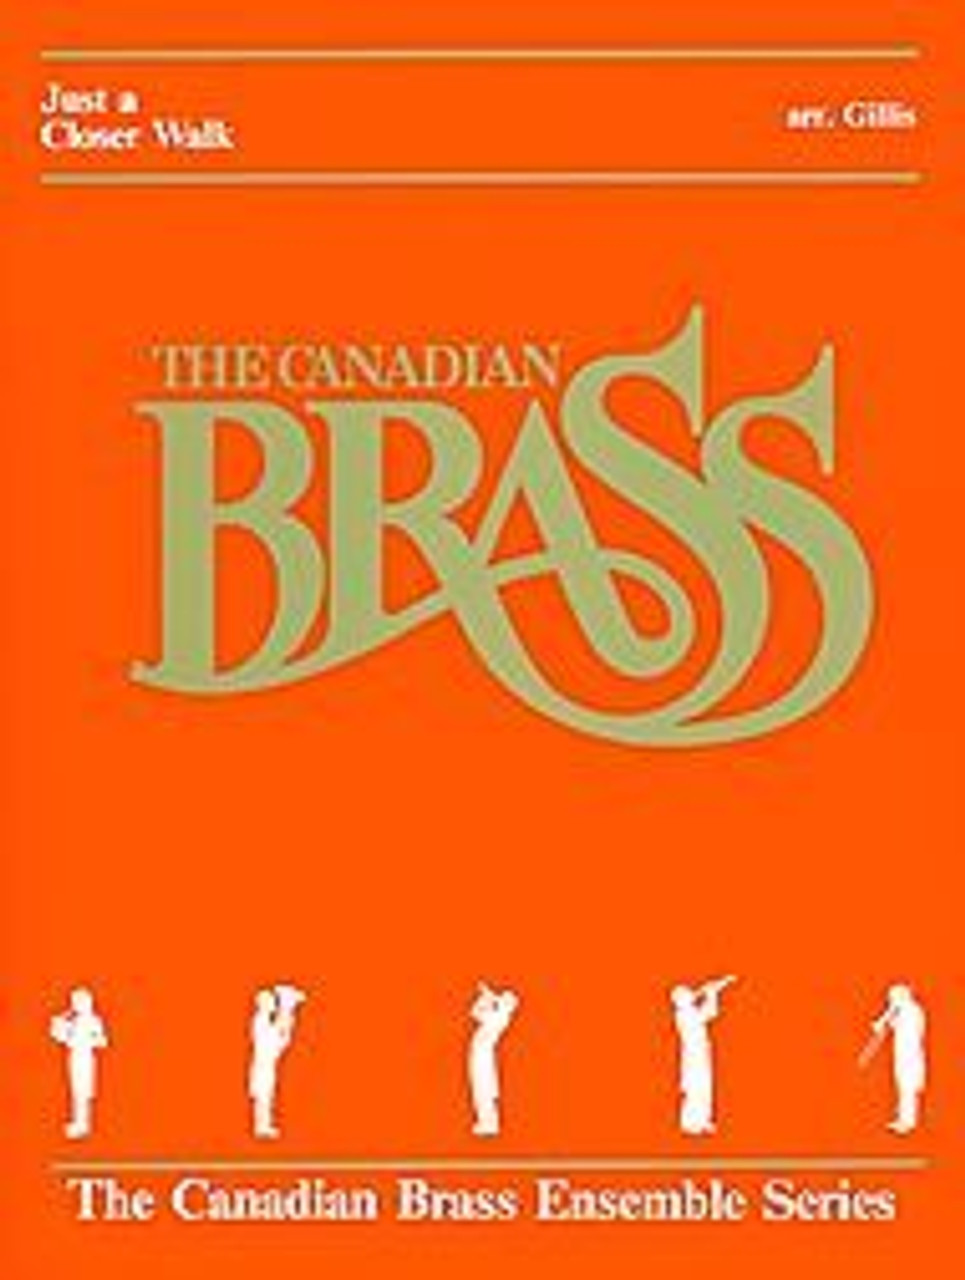 Just a Closer Walk with Thee for Brass Quintet (Trad /arr  Gillis)  Blackbinder Format (Trumpet 1 in Bb part)